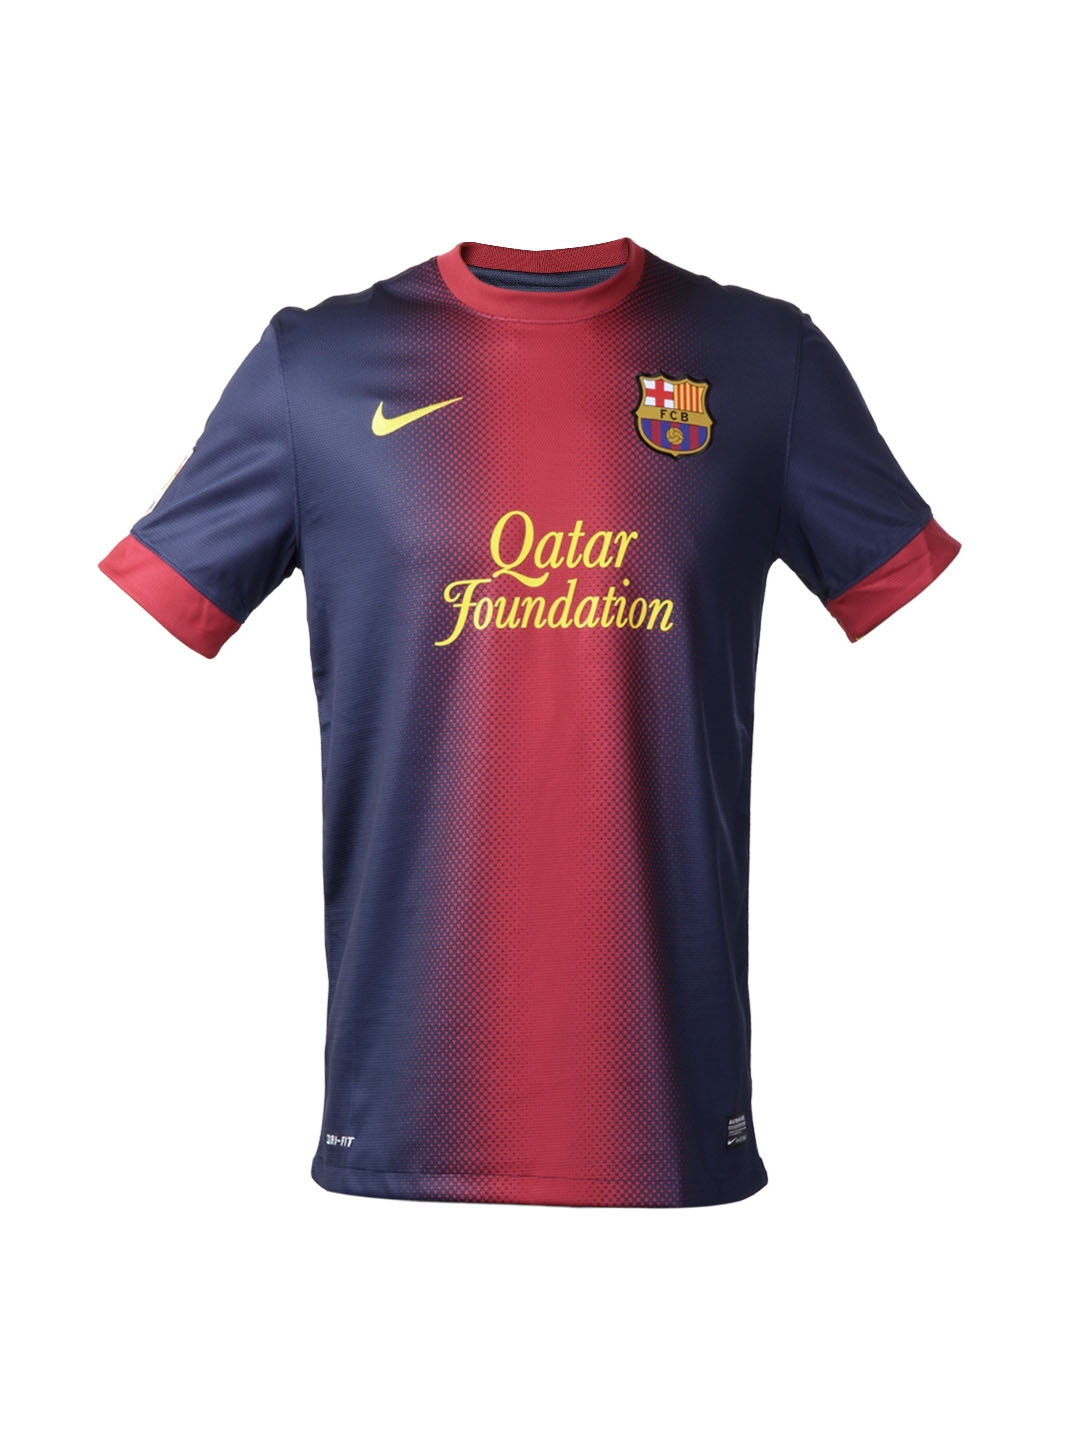 2307a2acfc4 Buy Nike Men Red   Blue FC Barcelona Jersey - Tshirts for Men 60953 ...